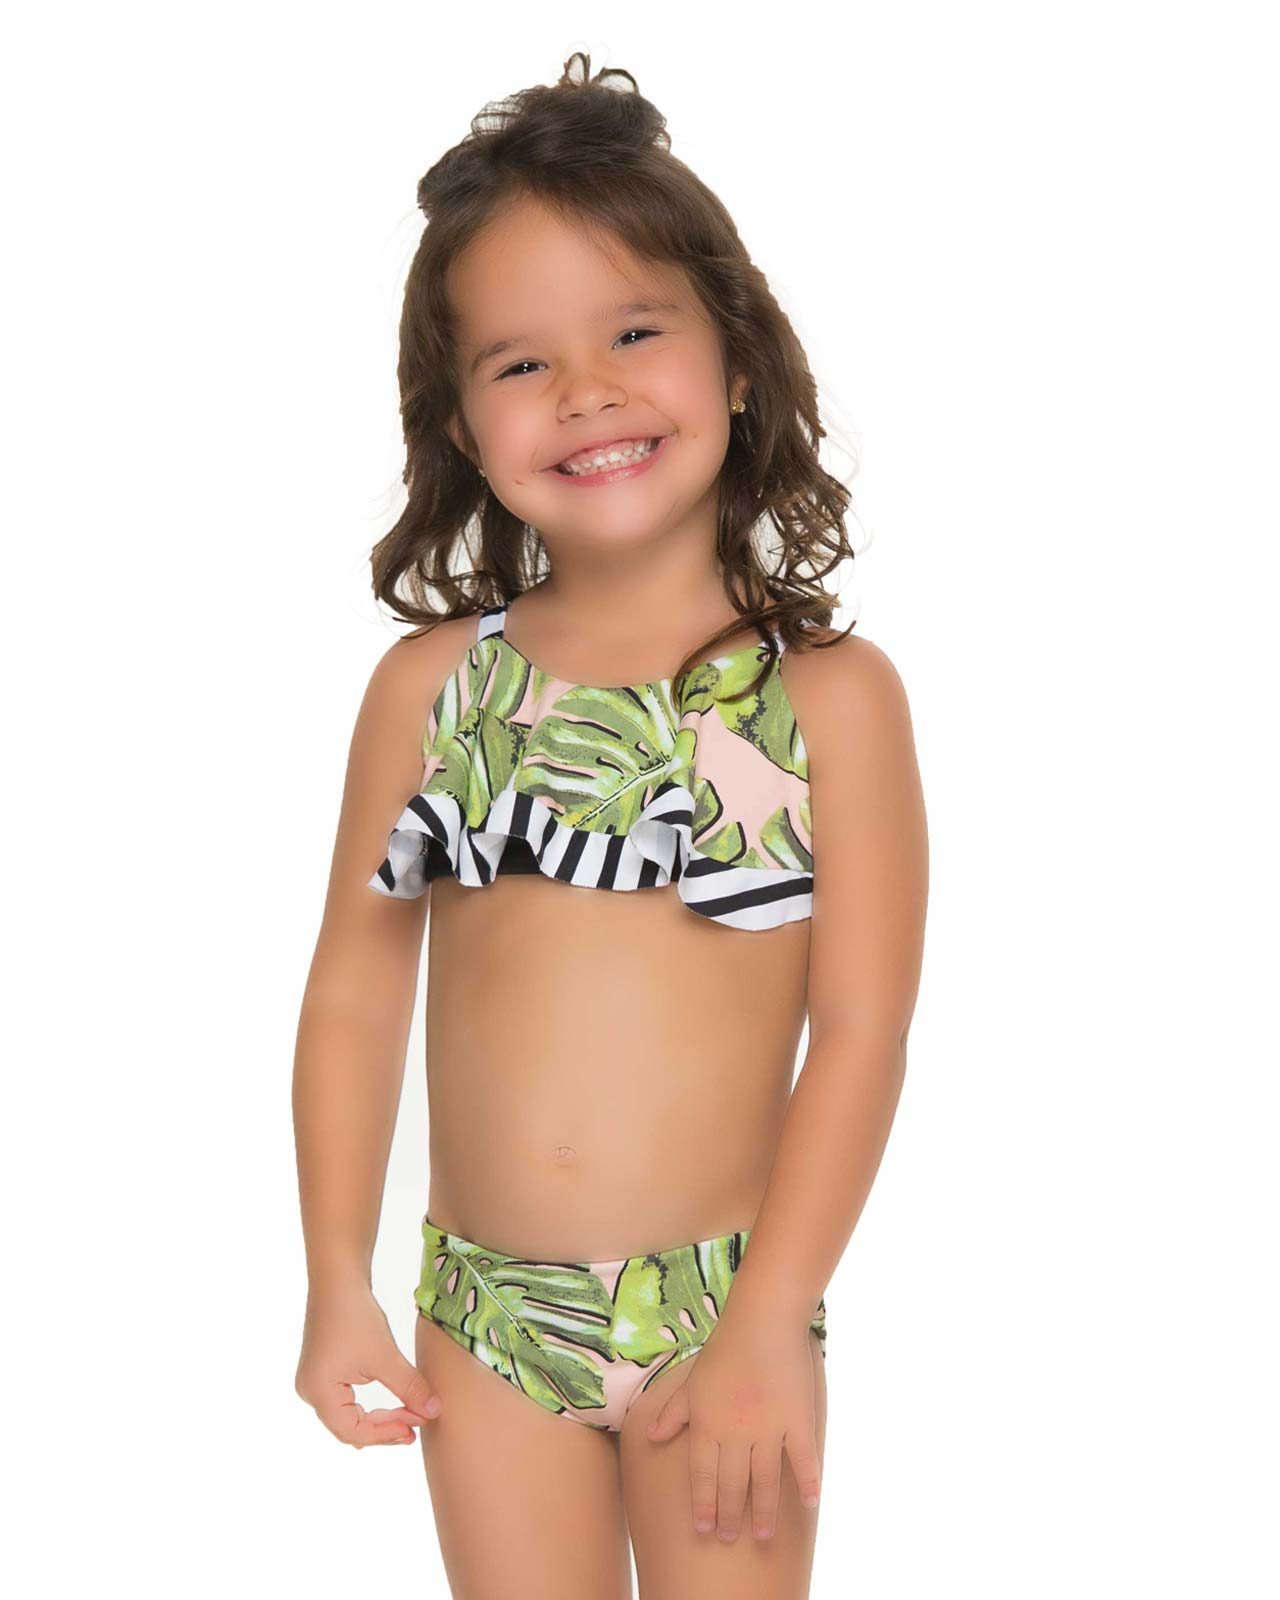 MONSTERA DELIGHT KIDS BIKINI